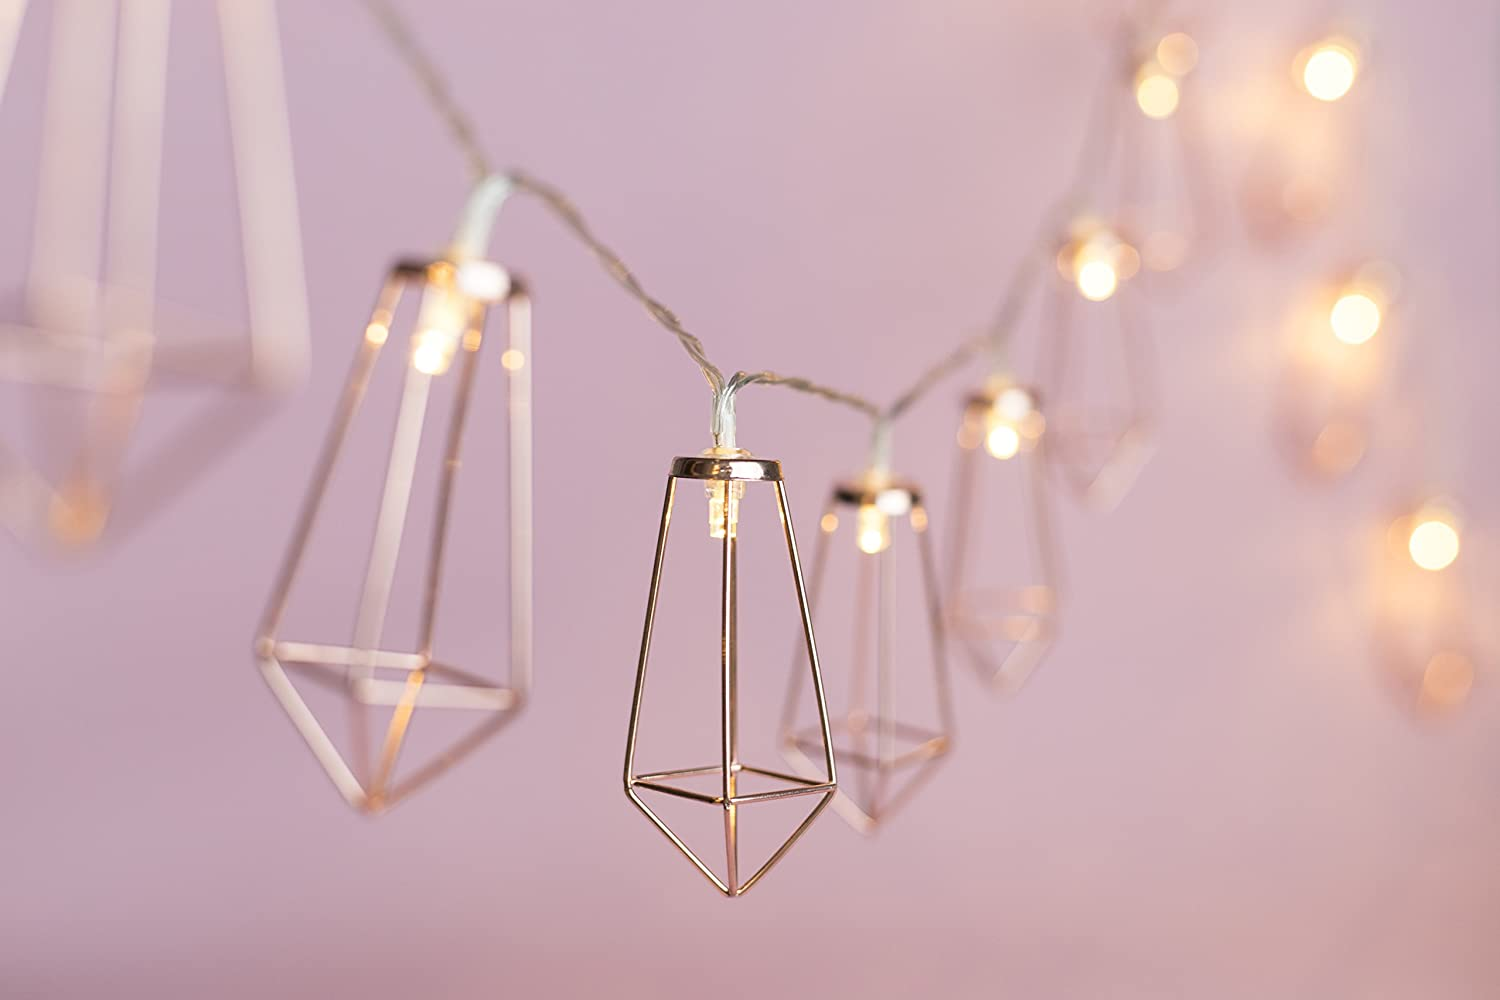 10 FT USB Rose Gold Geometric Boho LED String Lights, Great for Home Patio Bedroom Garden Wedding Party Indoor Decoration (Warm White) OHSEE